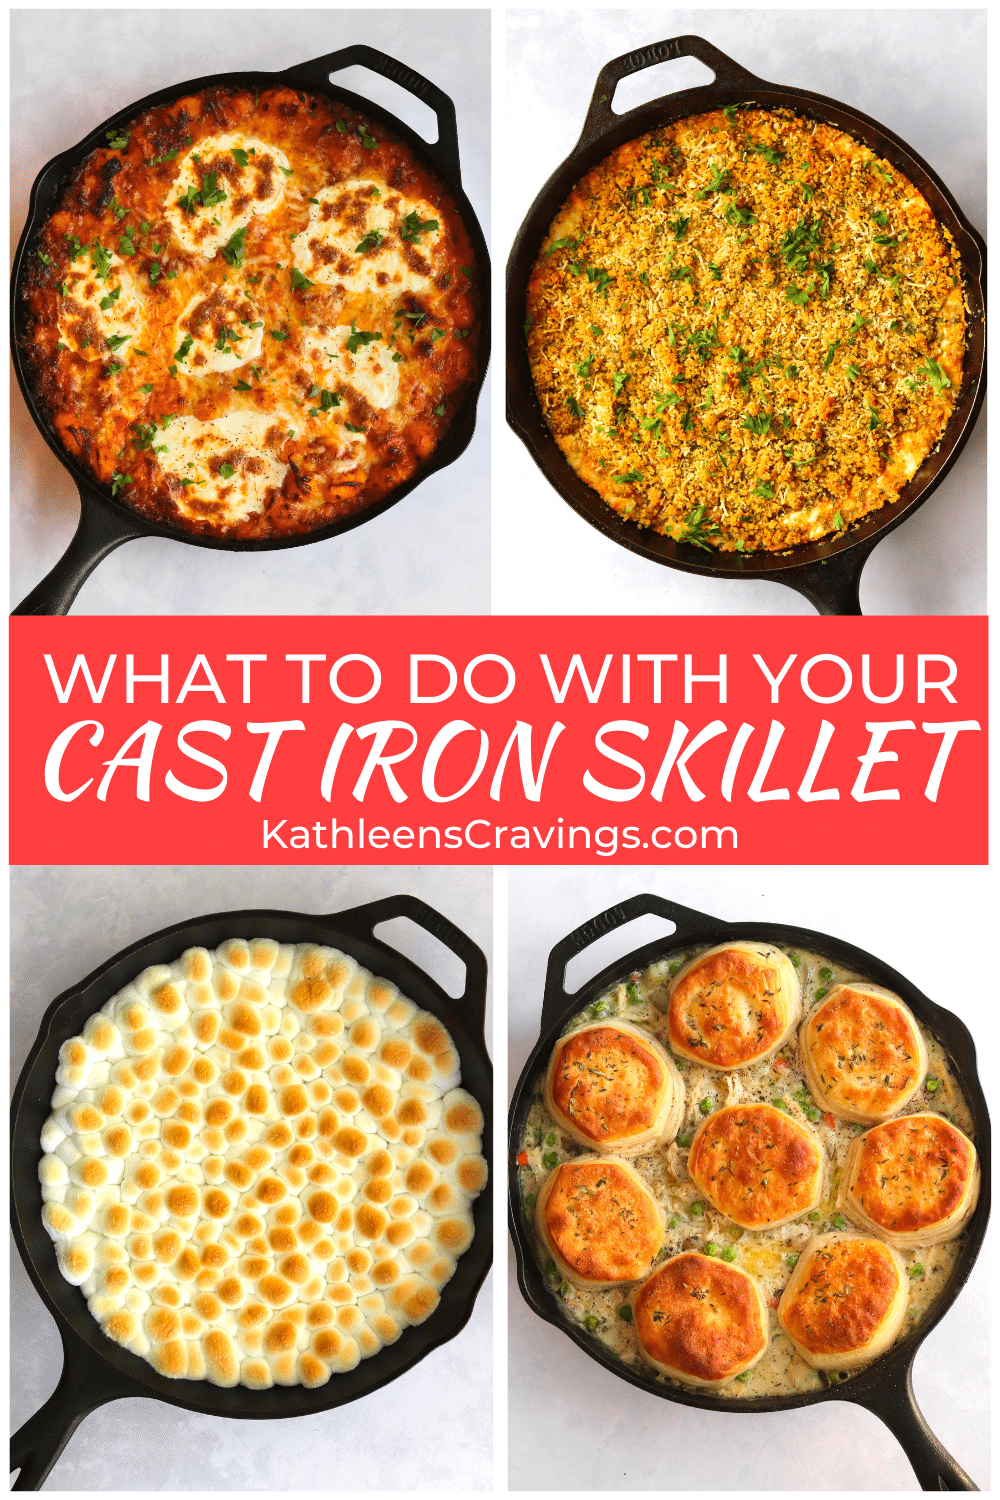 Food in cast iron skillet with text overlay